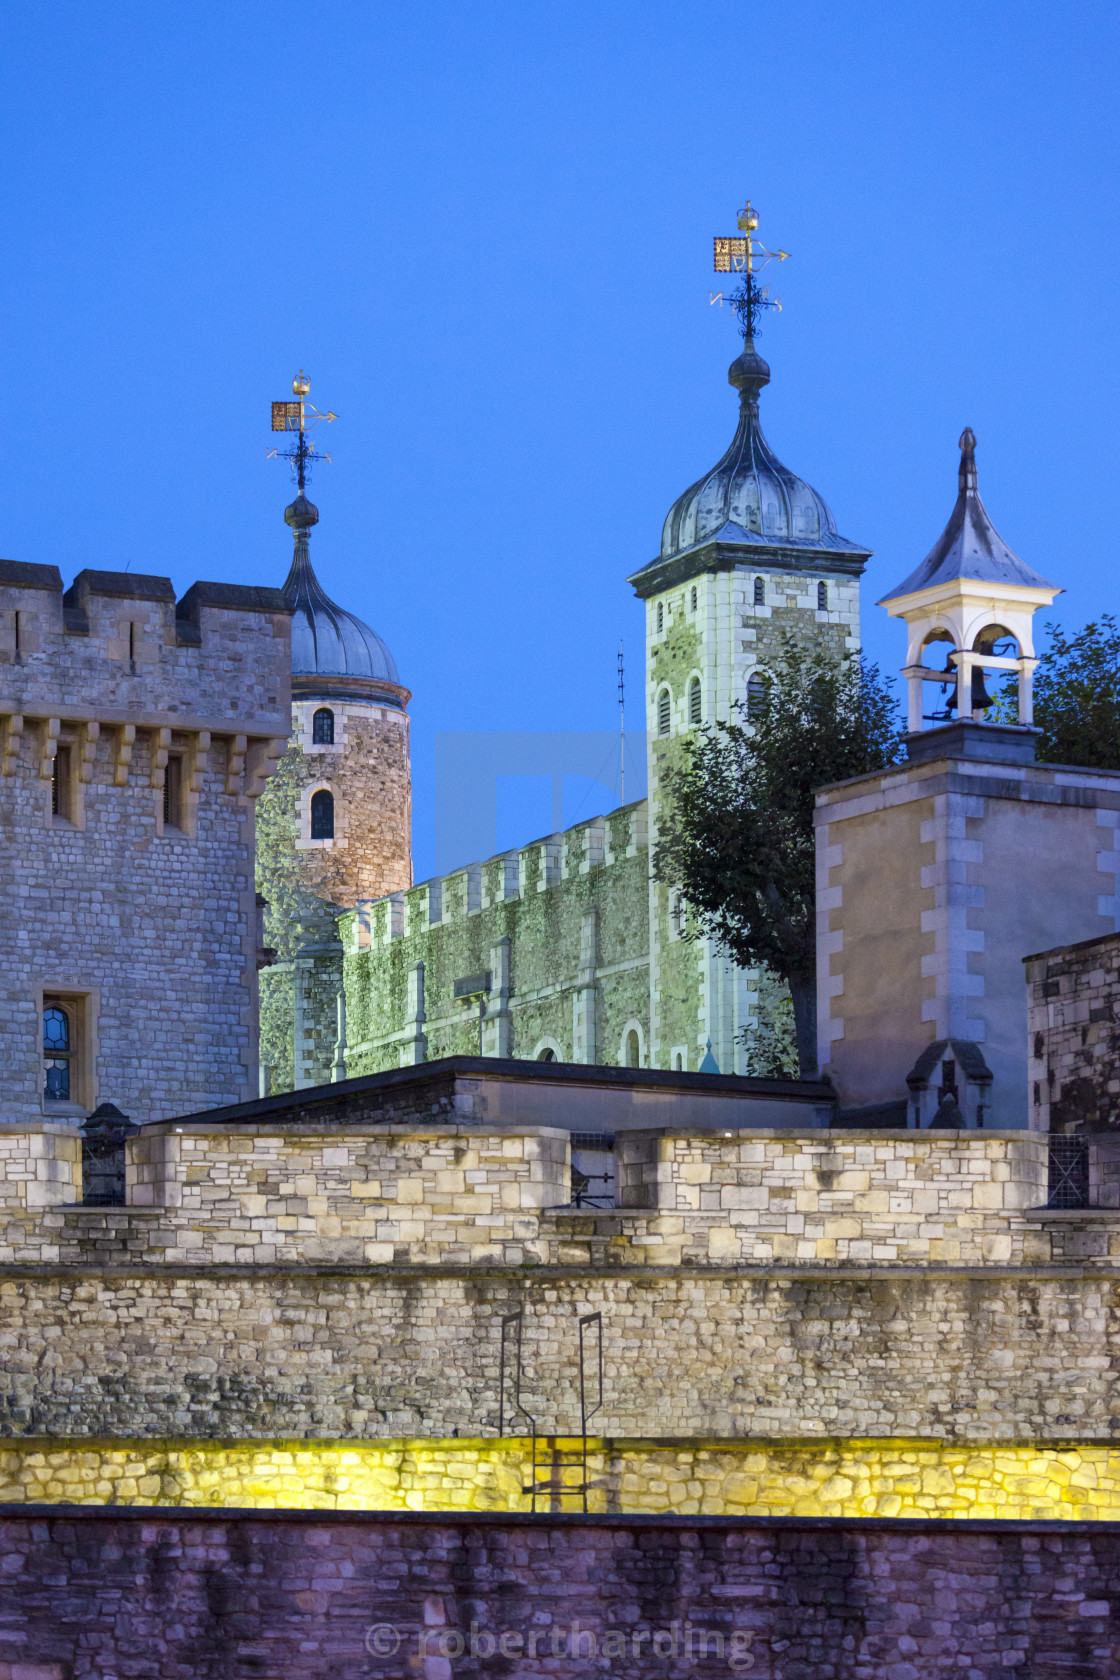 """The Tower of London illuminated at night, UNESCO World Heritage Site, London,..."" stock image"